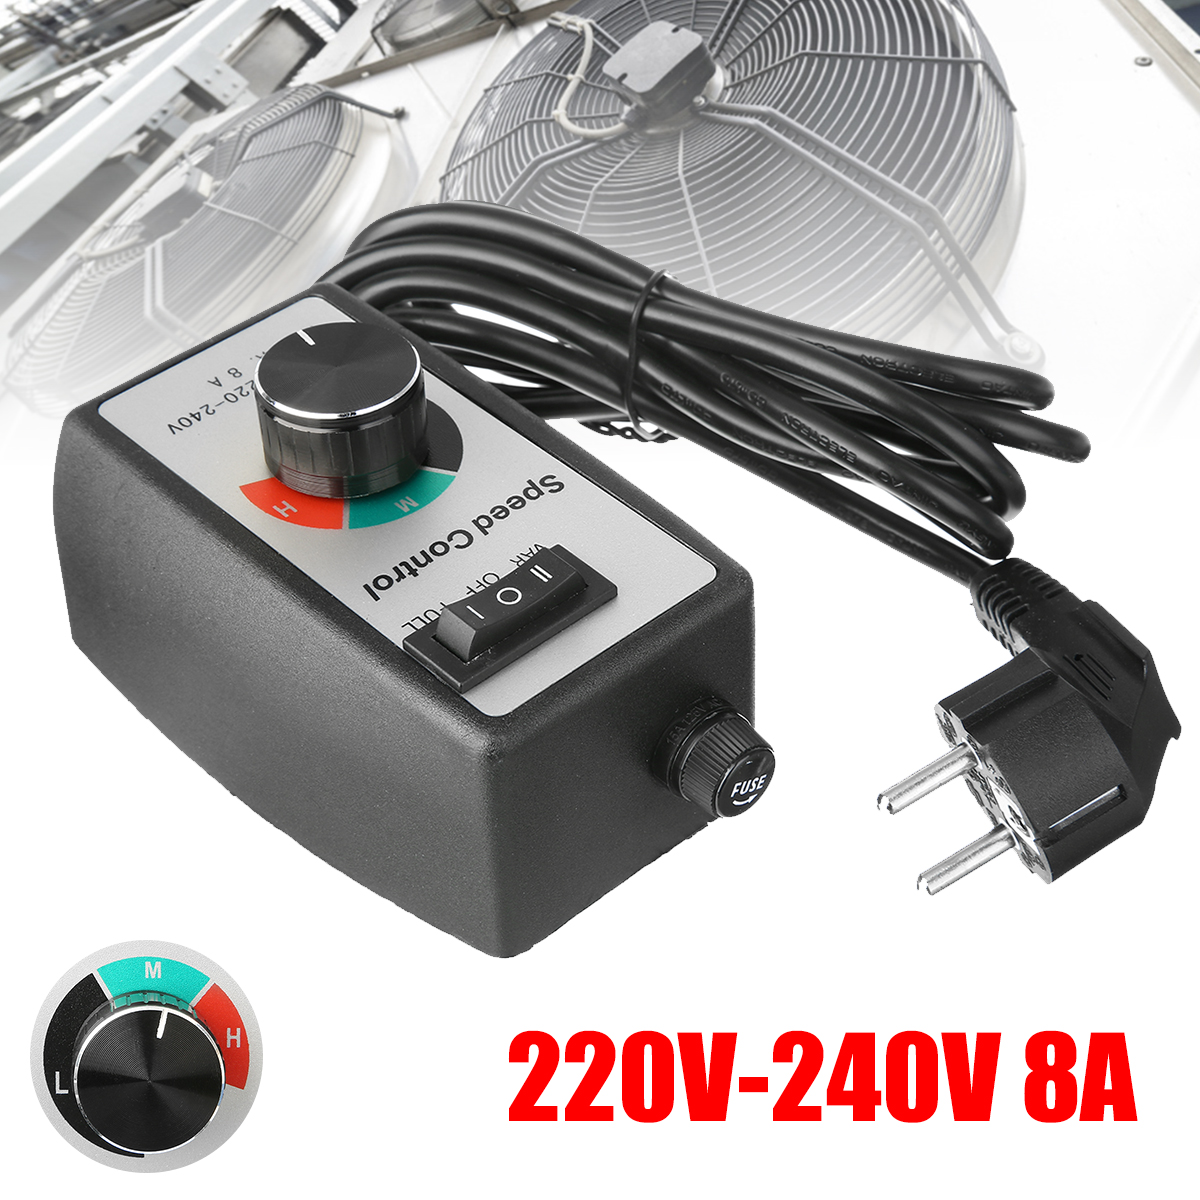 220-240V Router Speed Control Electric Motor Rheostat Variable Speed Lighting Fans Motor Controller Power Tools EU Plug